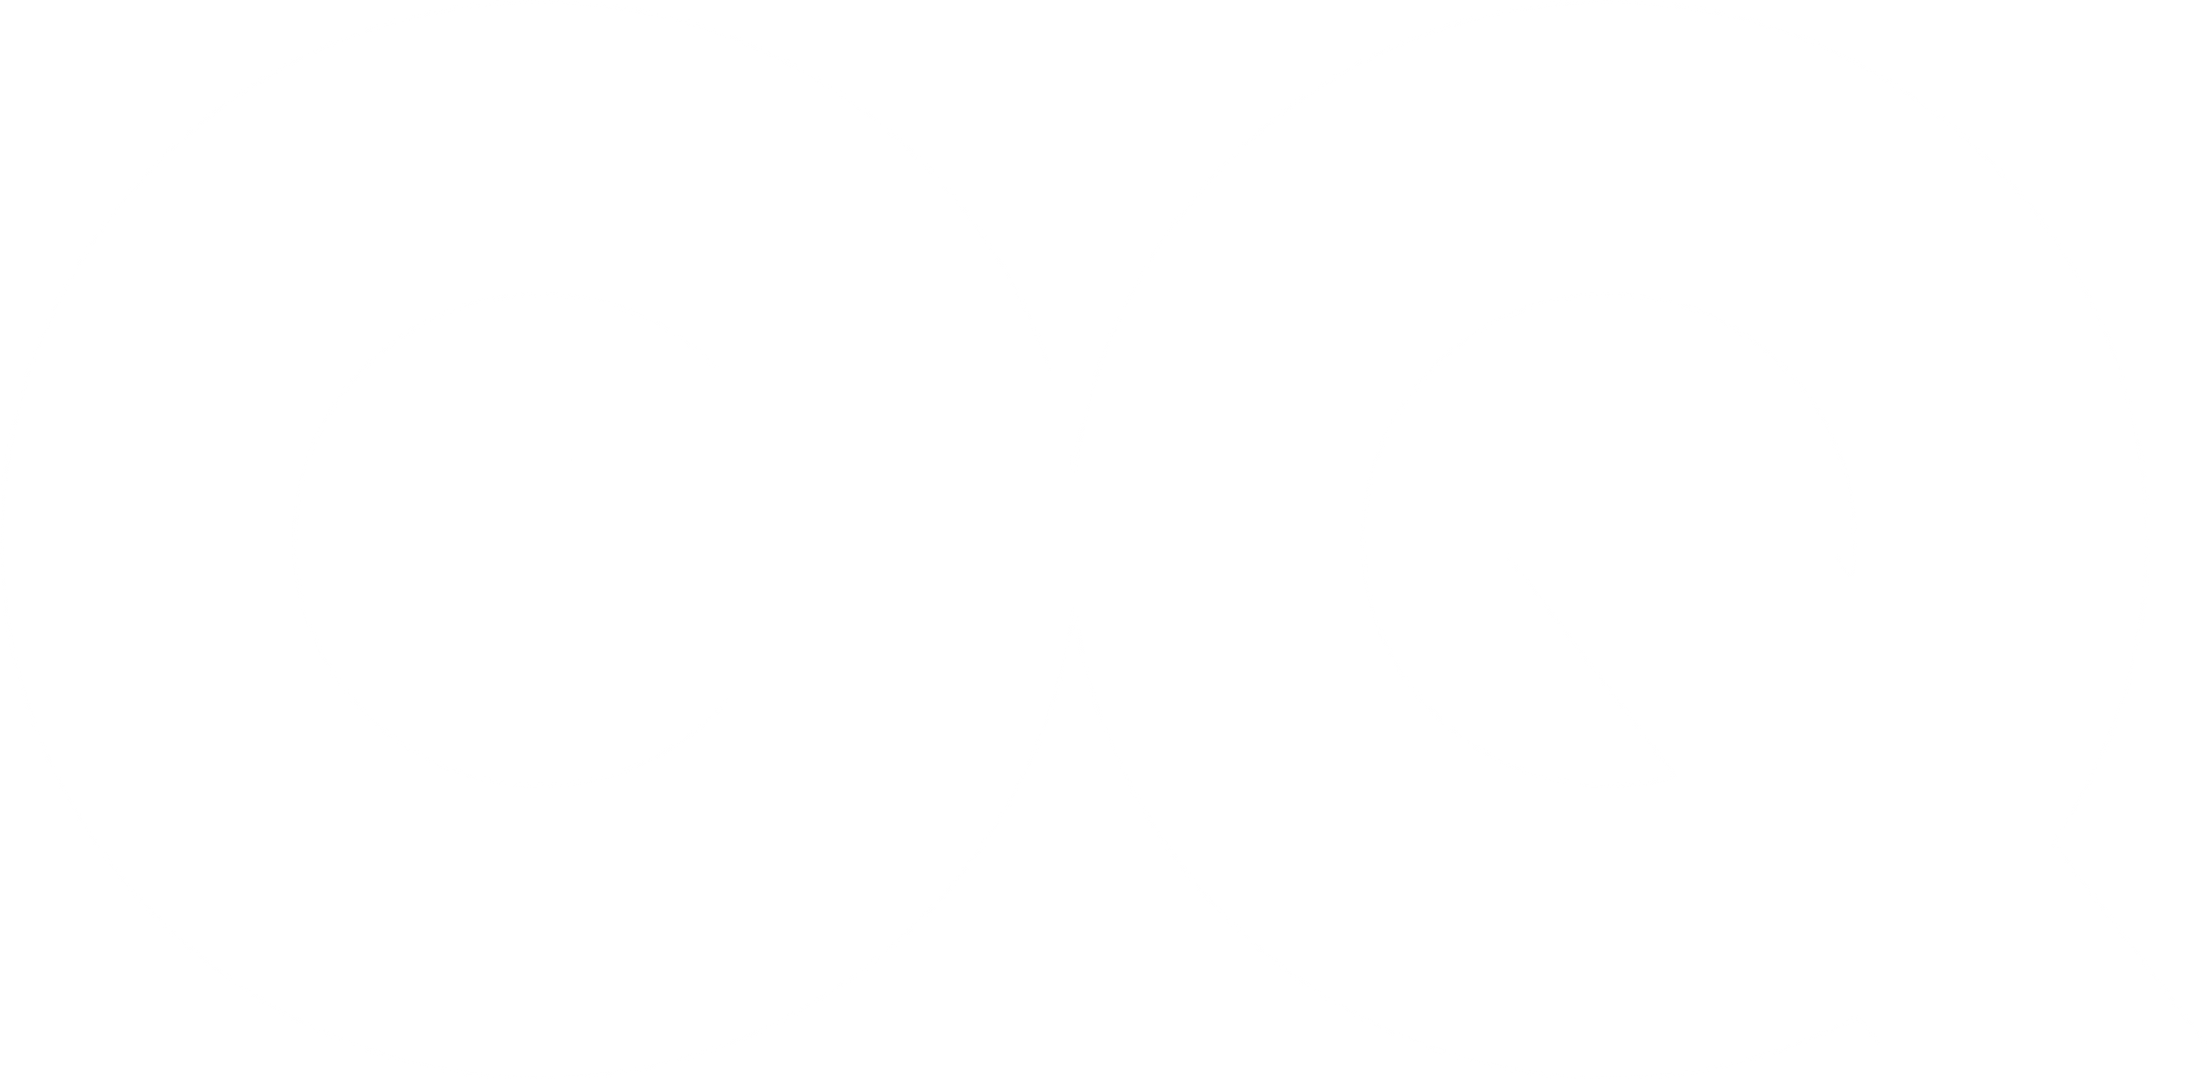 223-2236482_gq-magazine-logo-black-and-w